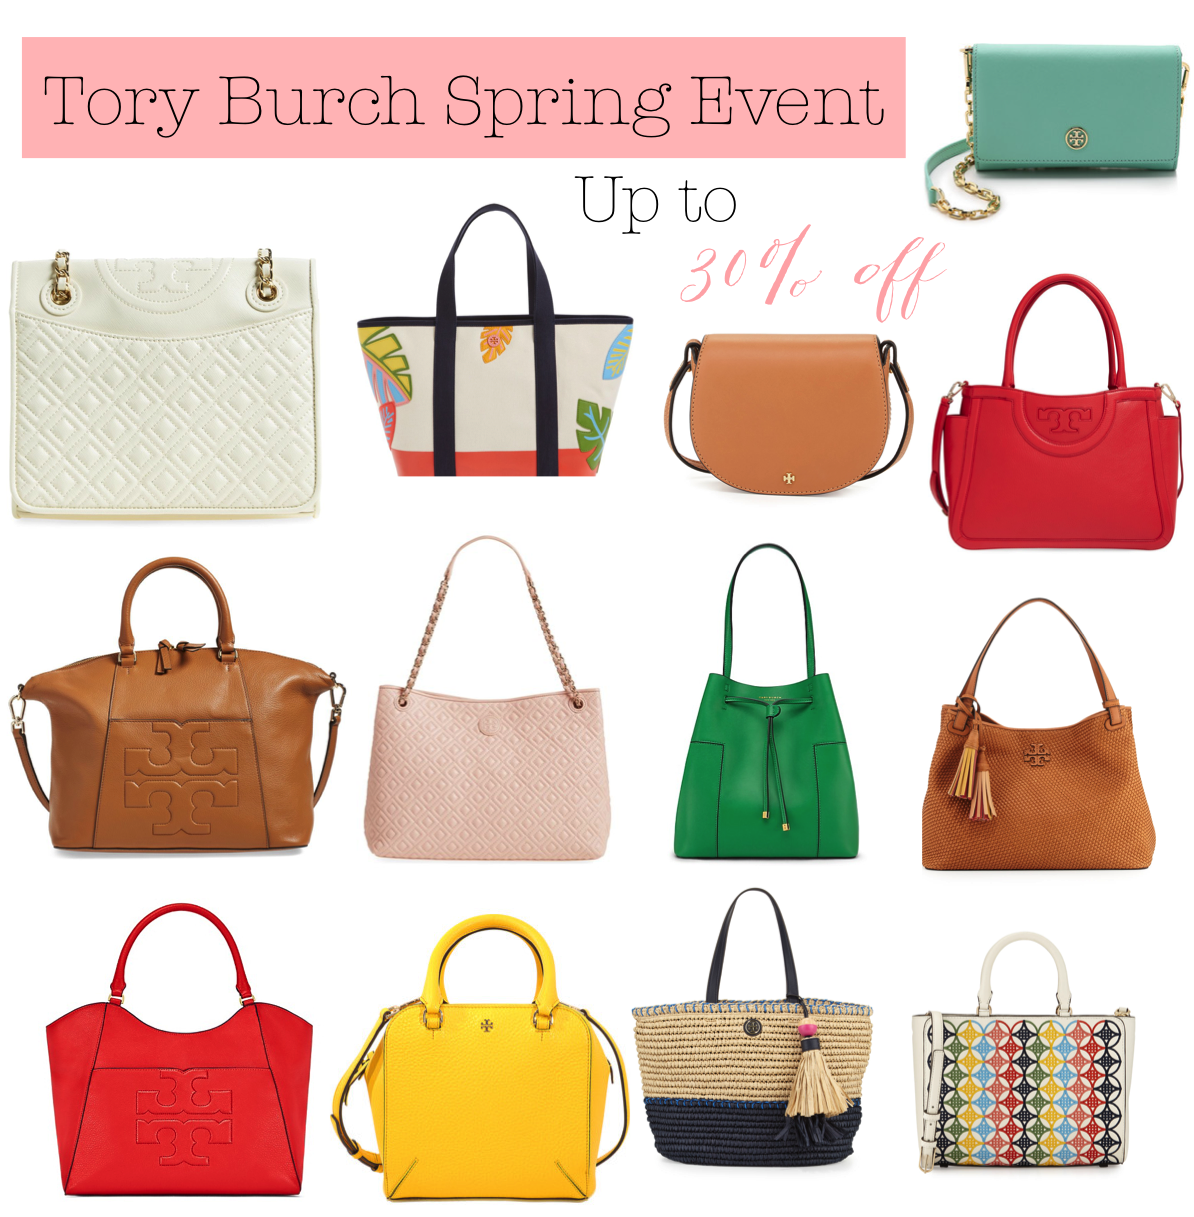 c070cf5053eb Here are some of my favorite handbags from the sale. Let me know if you  have any favorites from the sale so far.